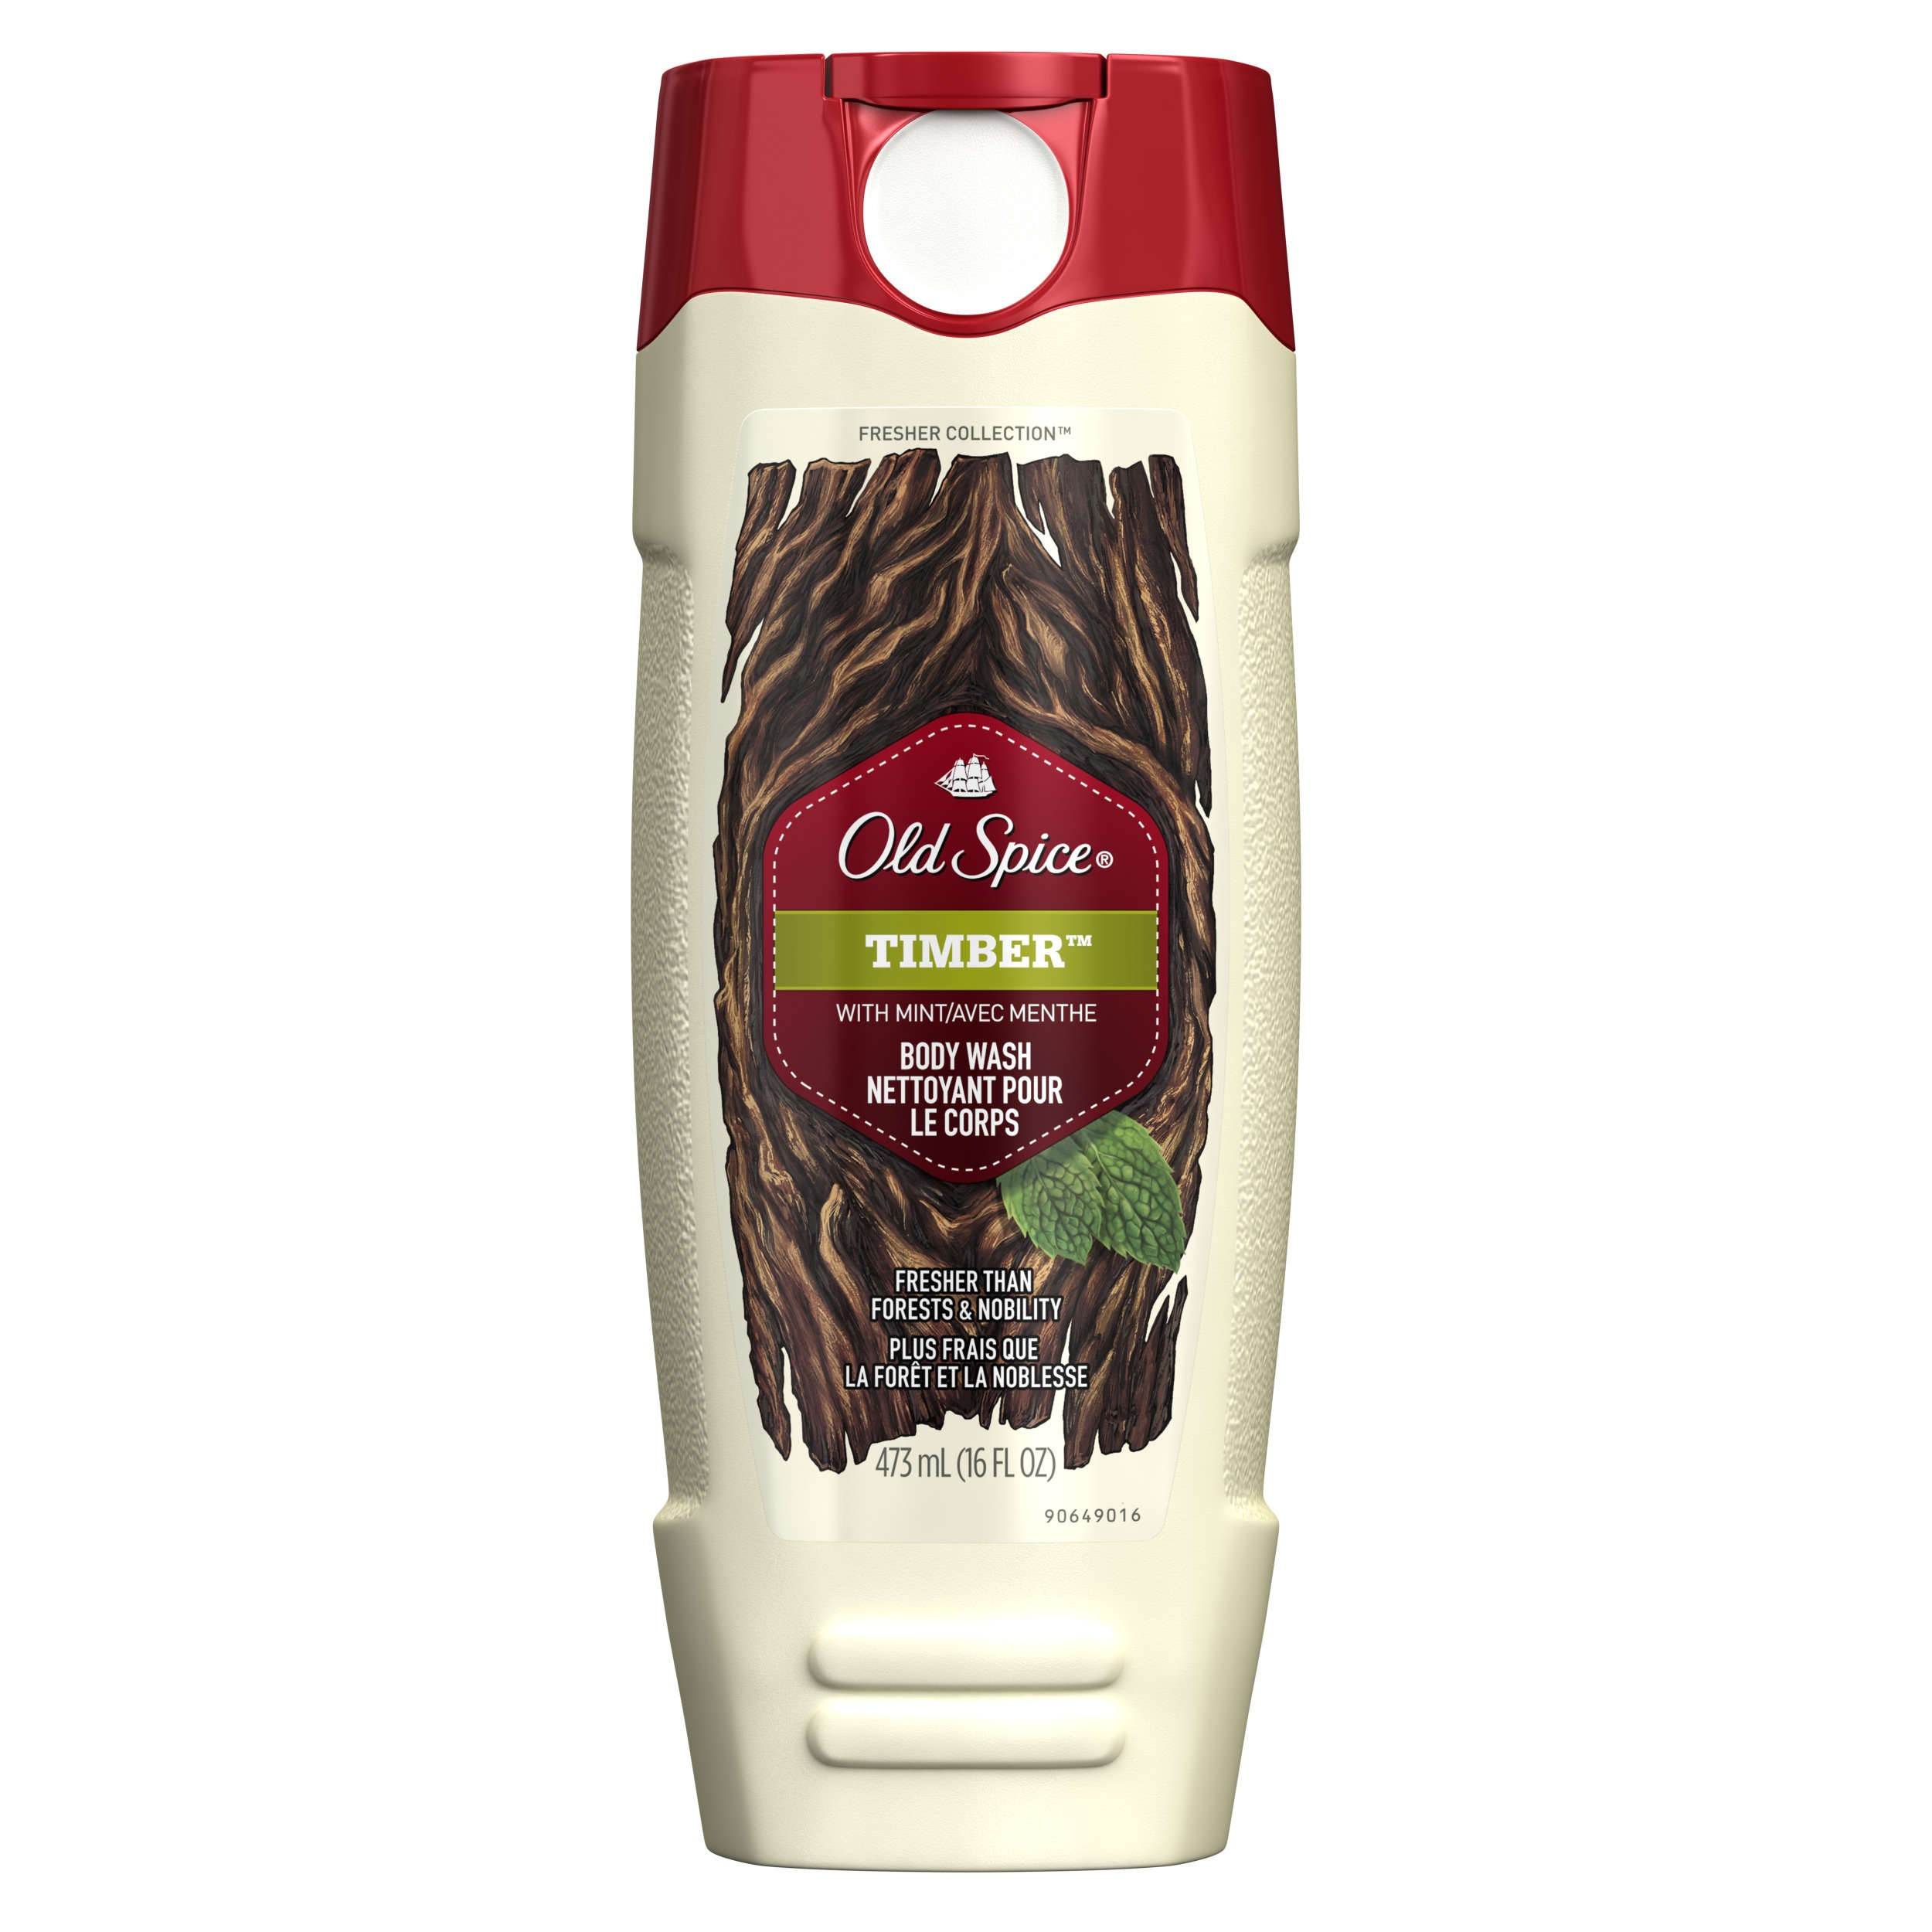 Old Spice Fresher Timber Scent Body Wash for Men, 16 oz